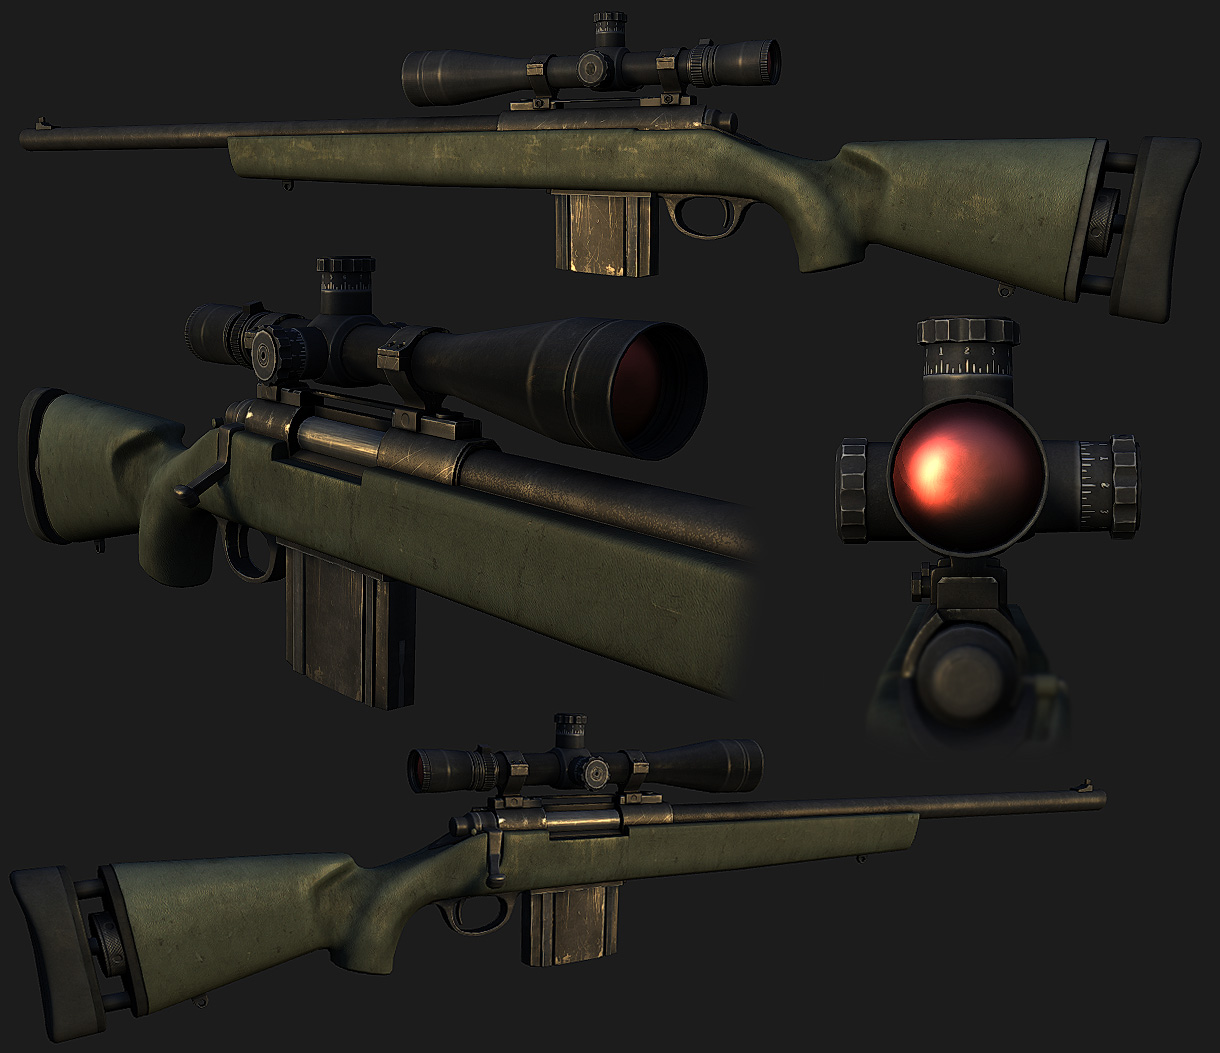 M24 Sniper Weapon by panick